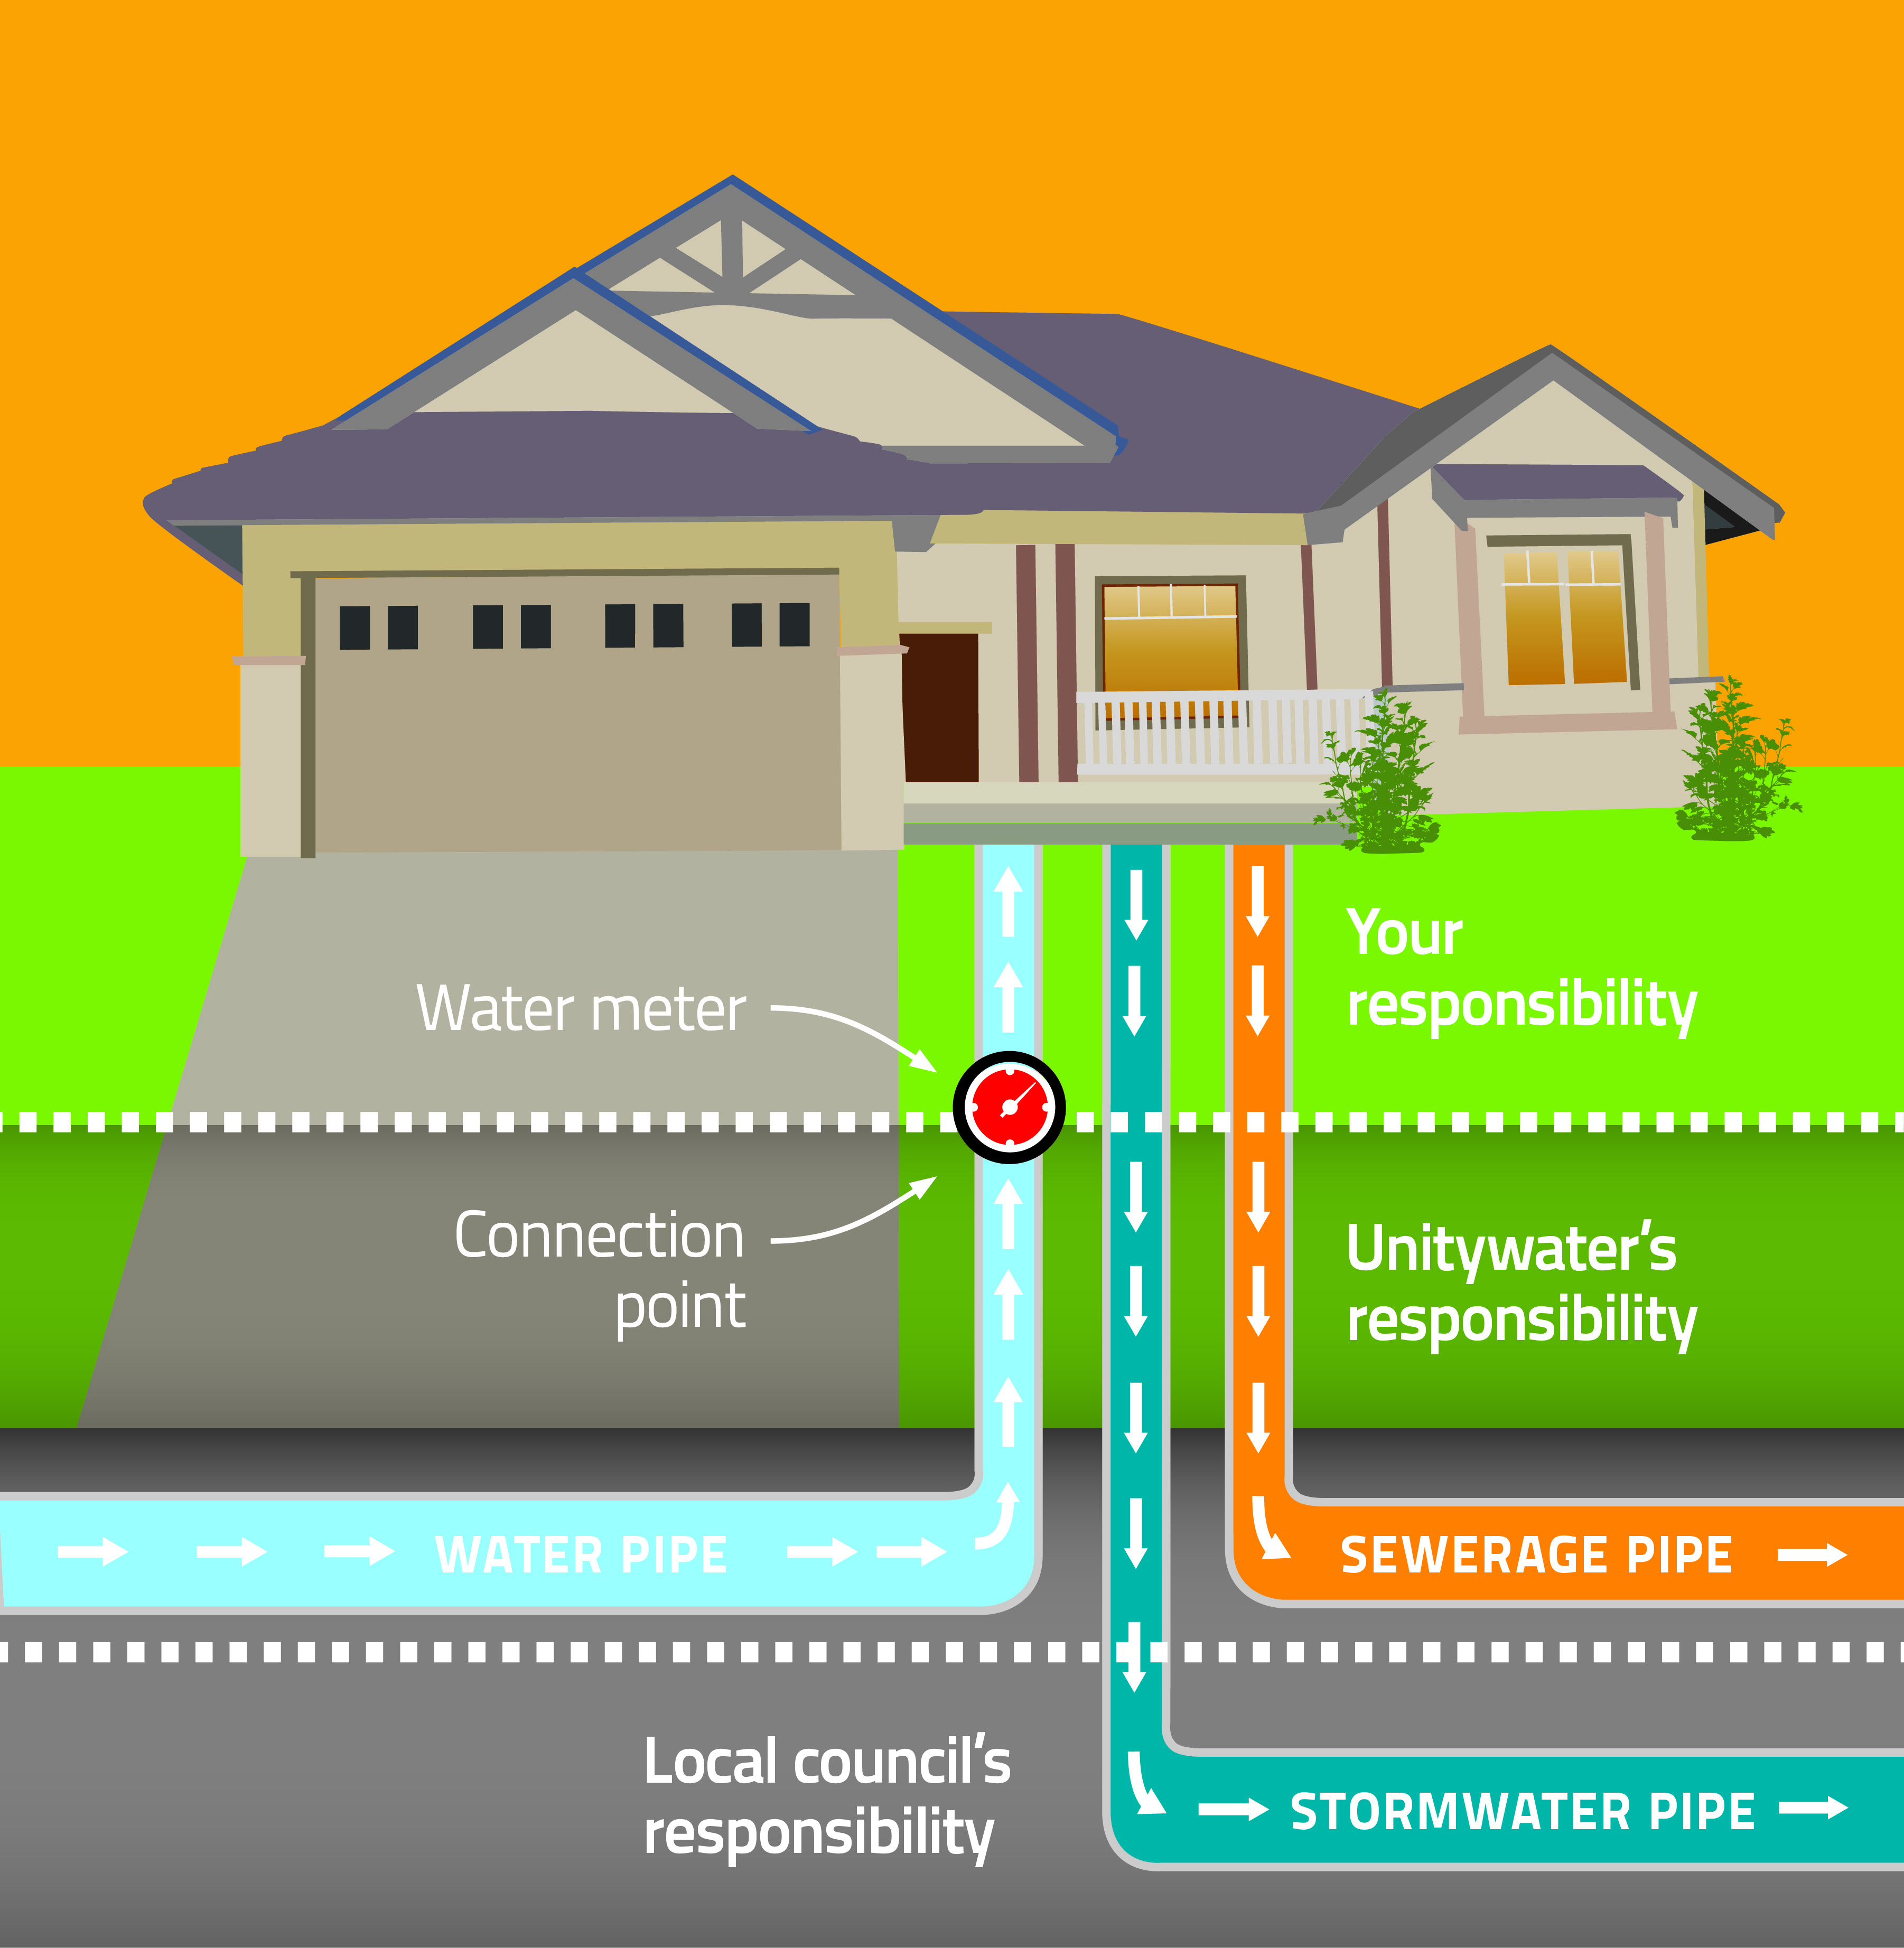 Water and sewage pipe responsibility diagram